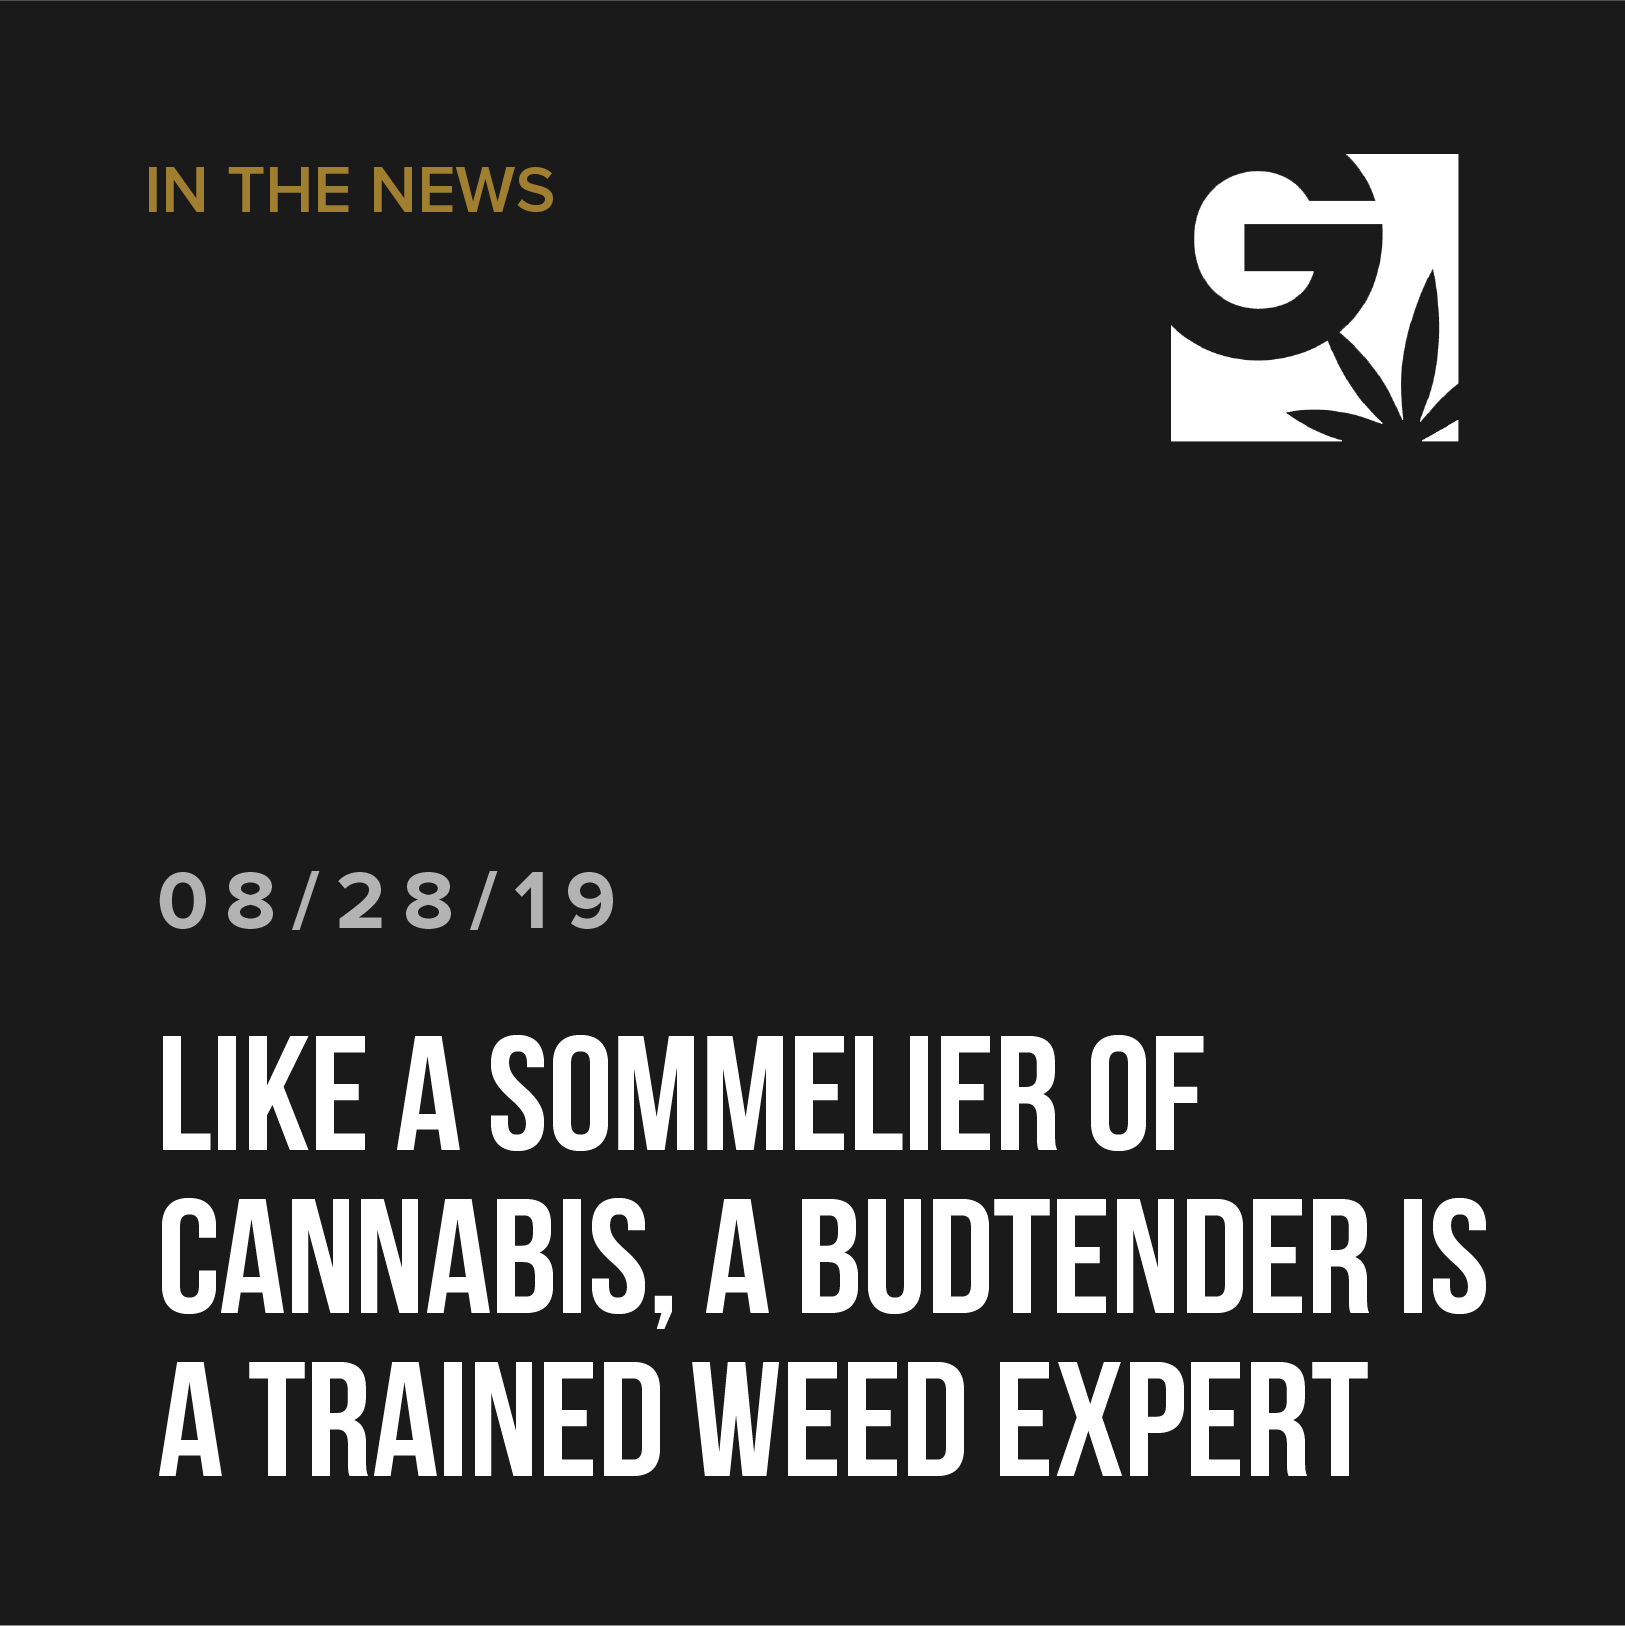 Like a sommelier of cannabis, a budtender is a trained weed expert